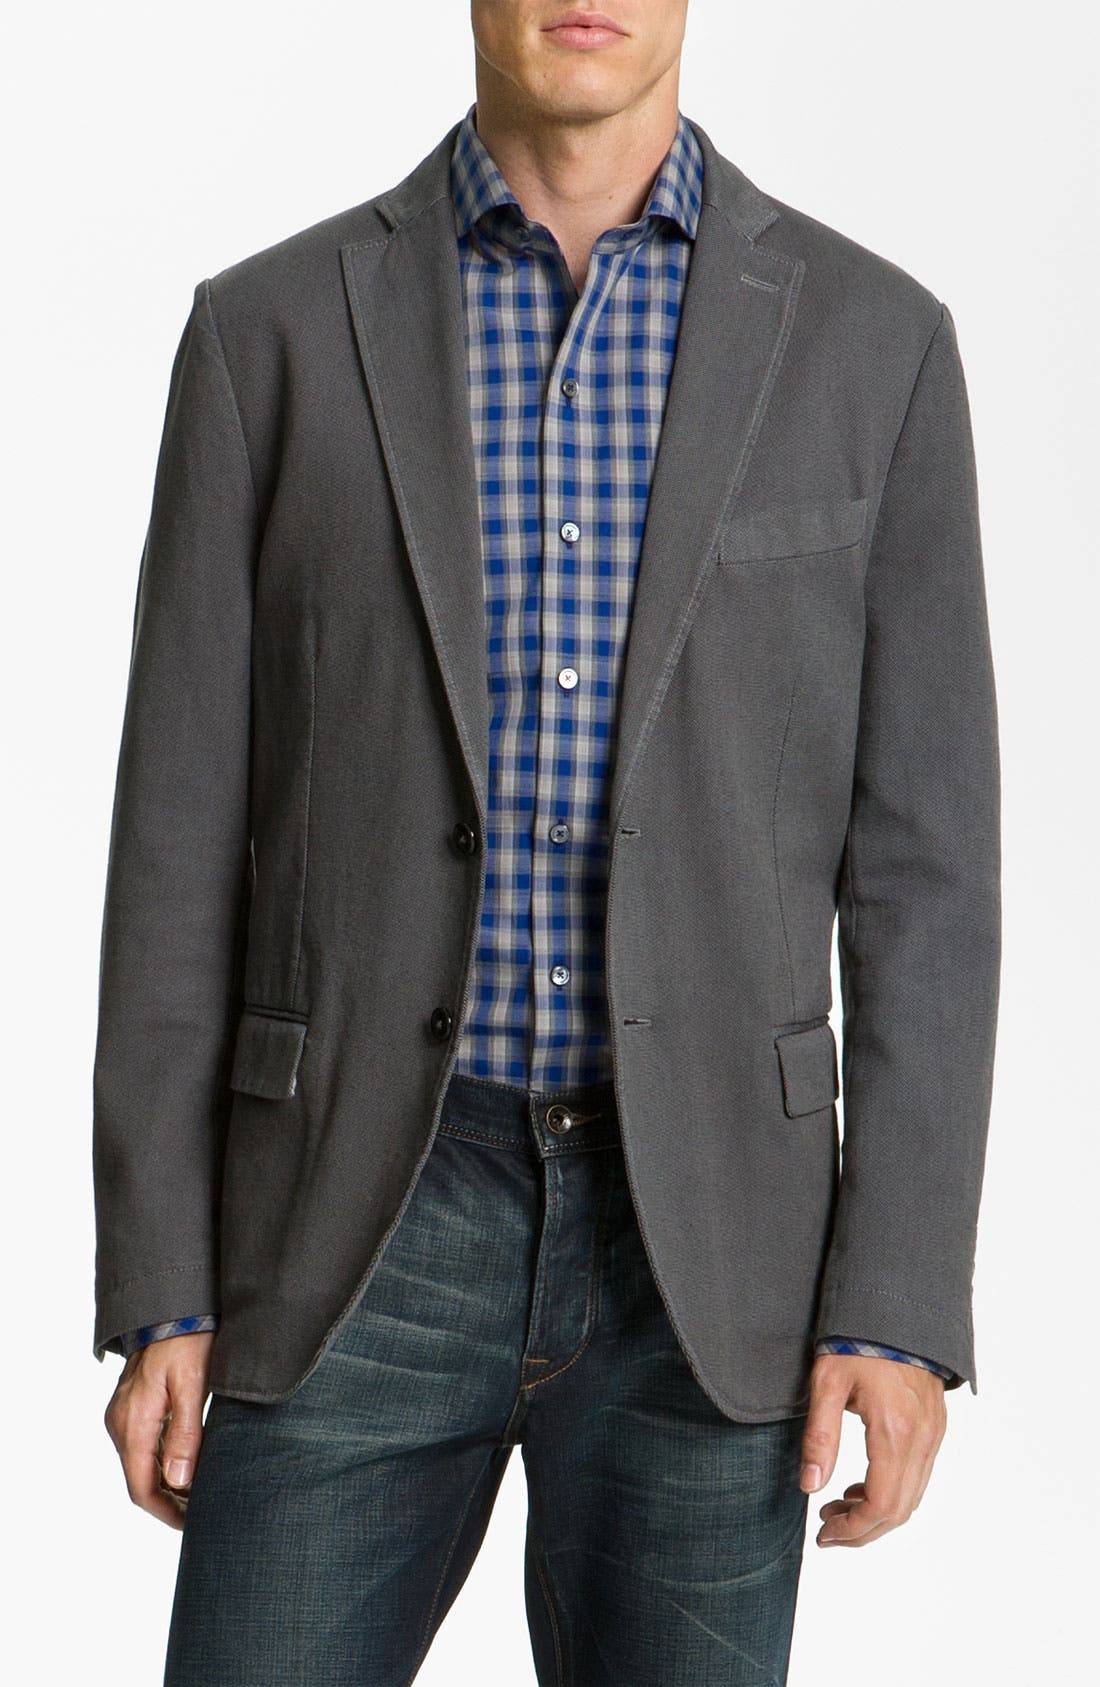 Alternate Image 1 Selected - Zachary Prell Sportcoat, Sport Shirt & John Varvatos Straight Leg Jeans